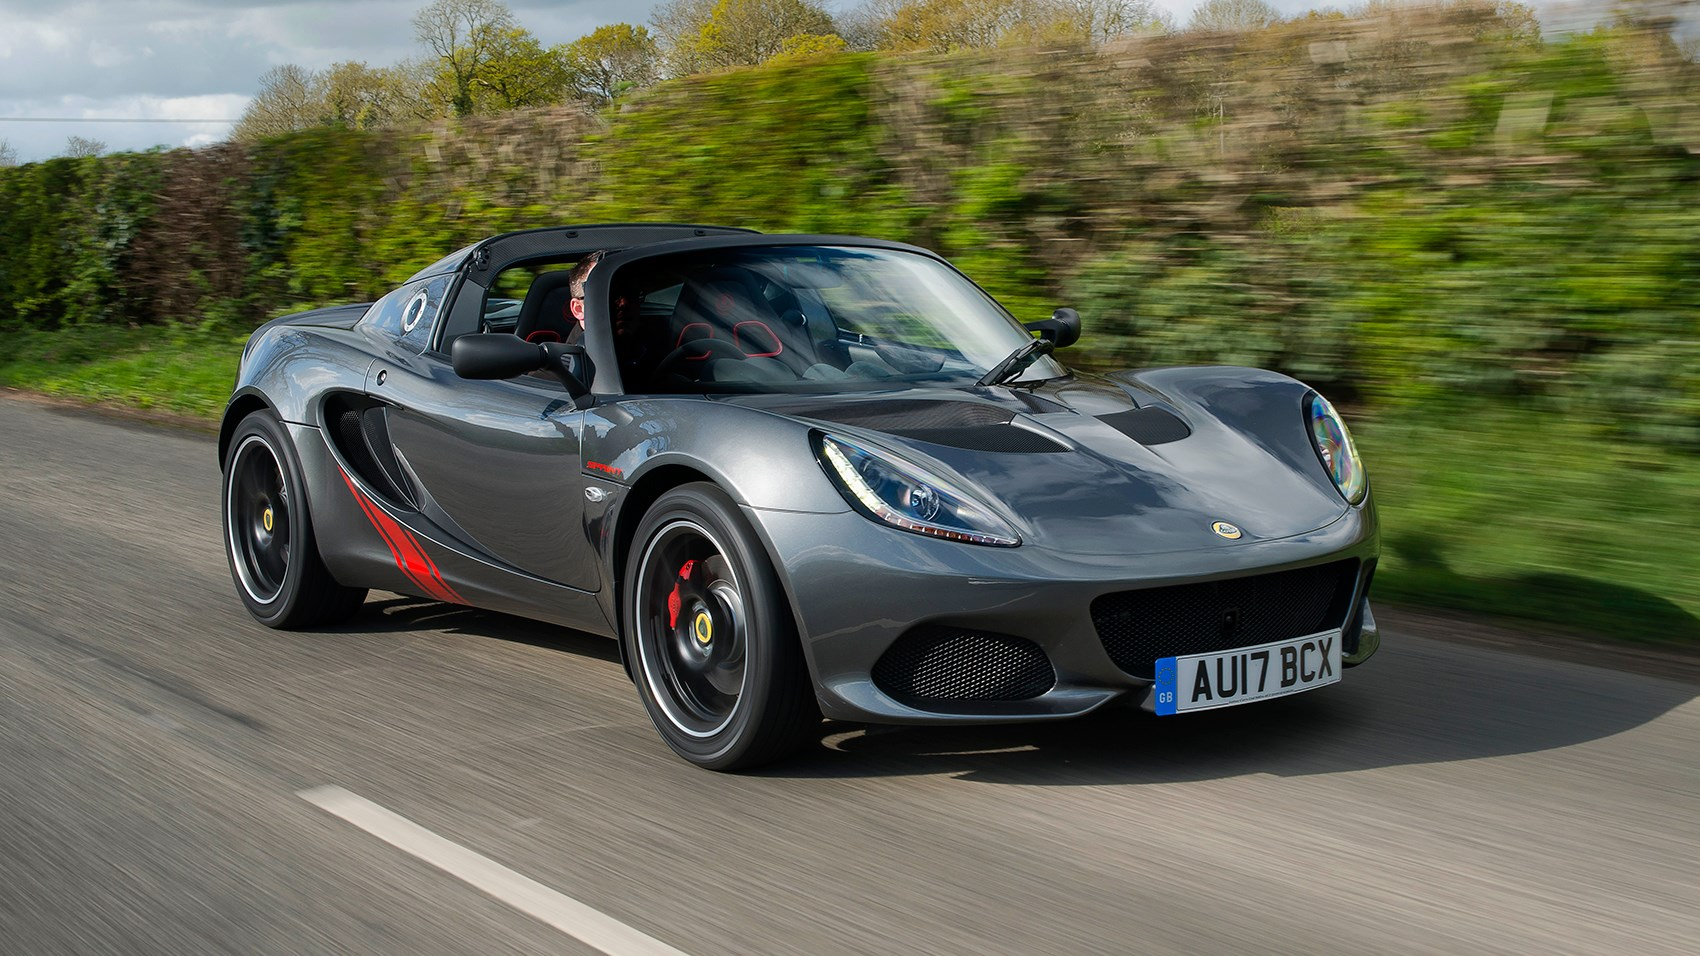 https://www.carmagazine.co.uk/Images/PageFiles/72398/Lotus-Elise-Sprint-08.jpg